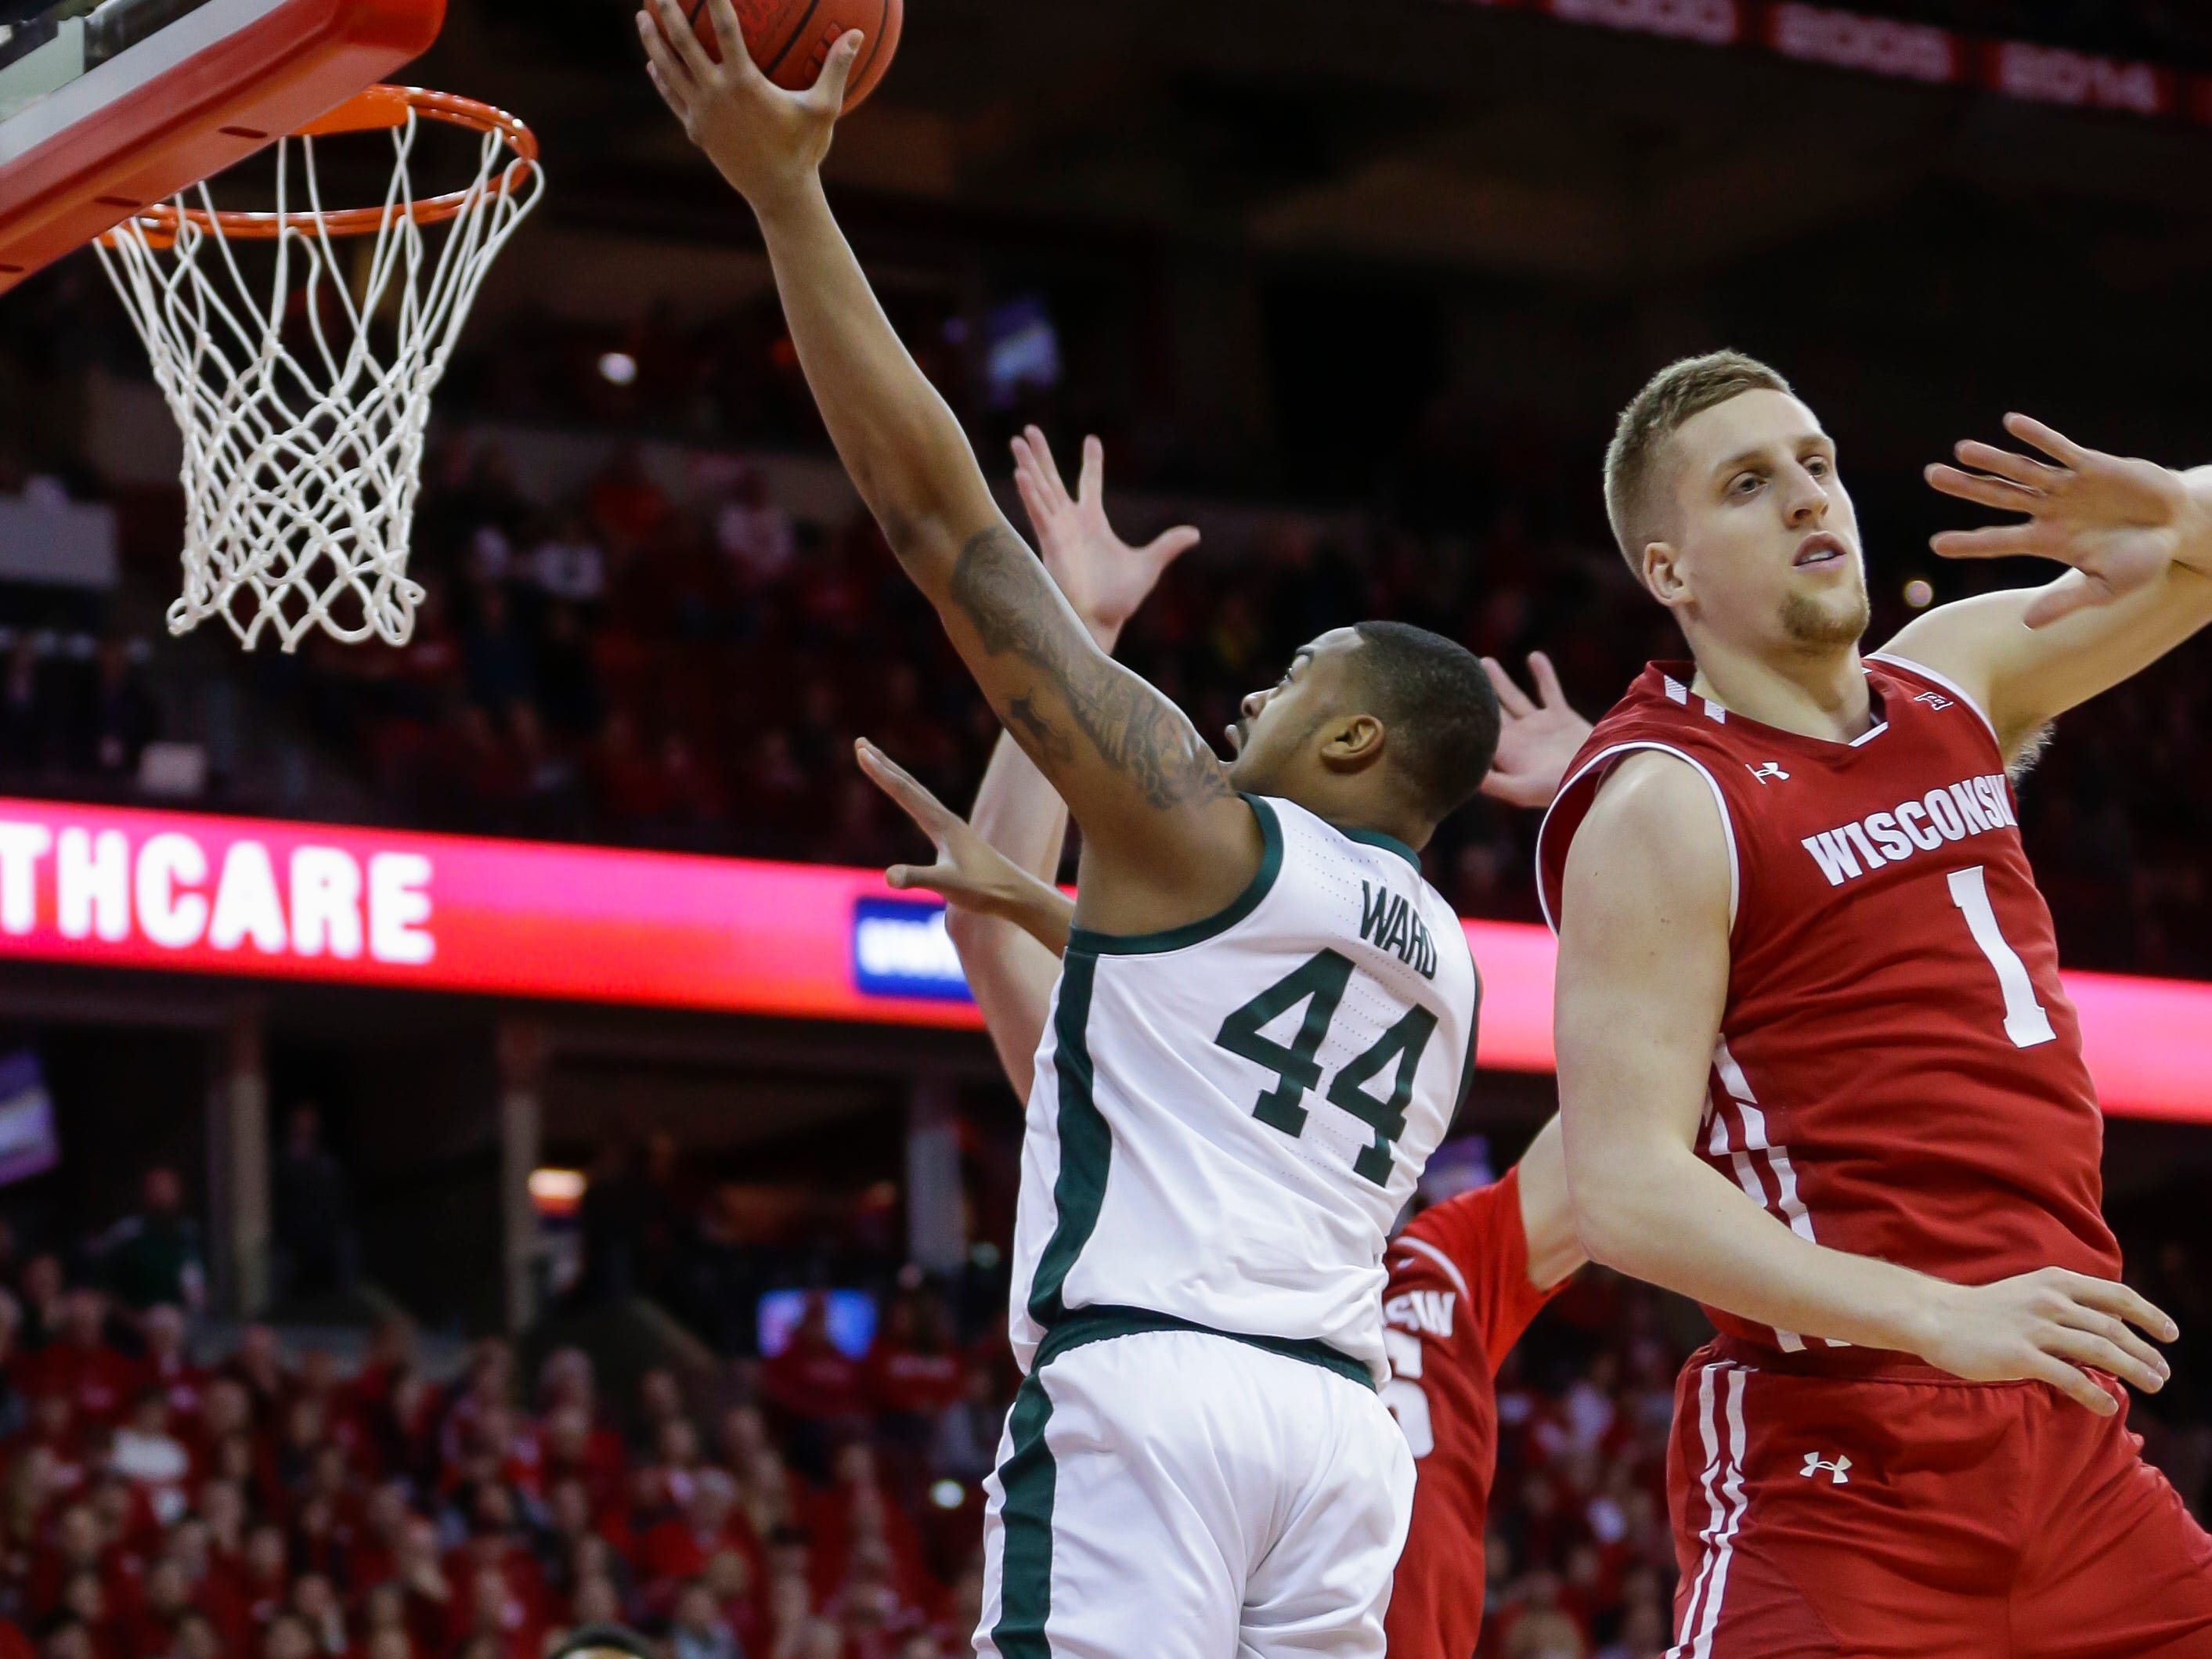 Michigan States's Nick Ward (44) shoots past Wisconsin's Brevin Pritzl (1) and Nate Reuvers, behind, during the first half of an NCAA college basketball game Tuesday, Feb. 12, 2019, in Madison, Wis.